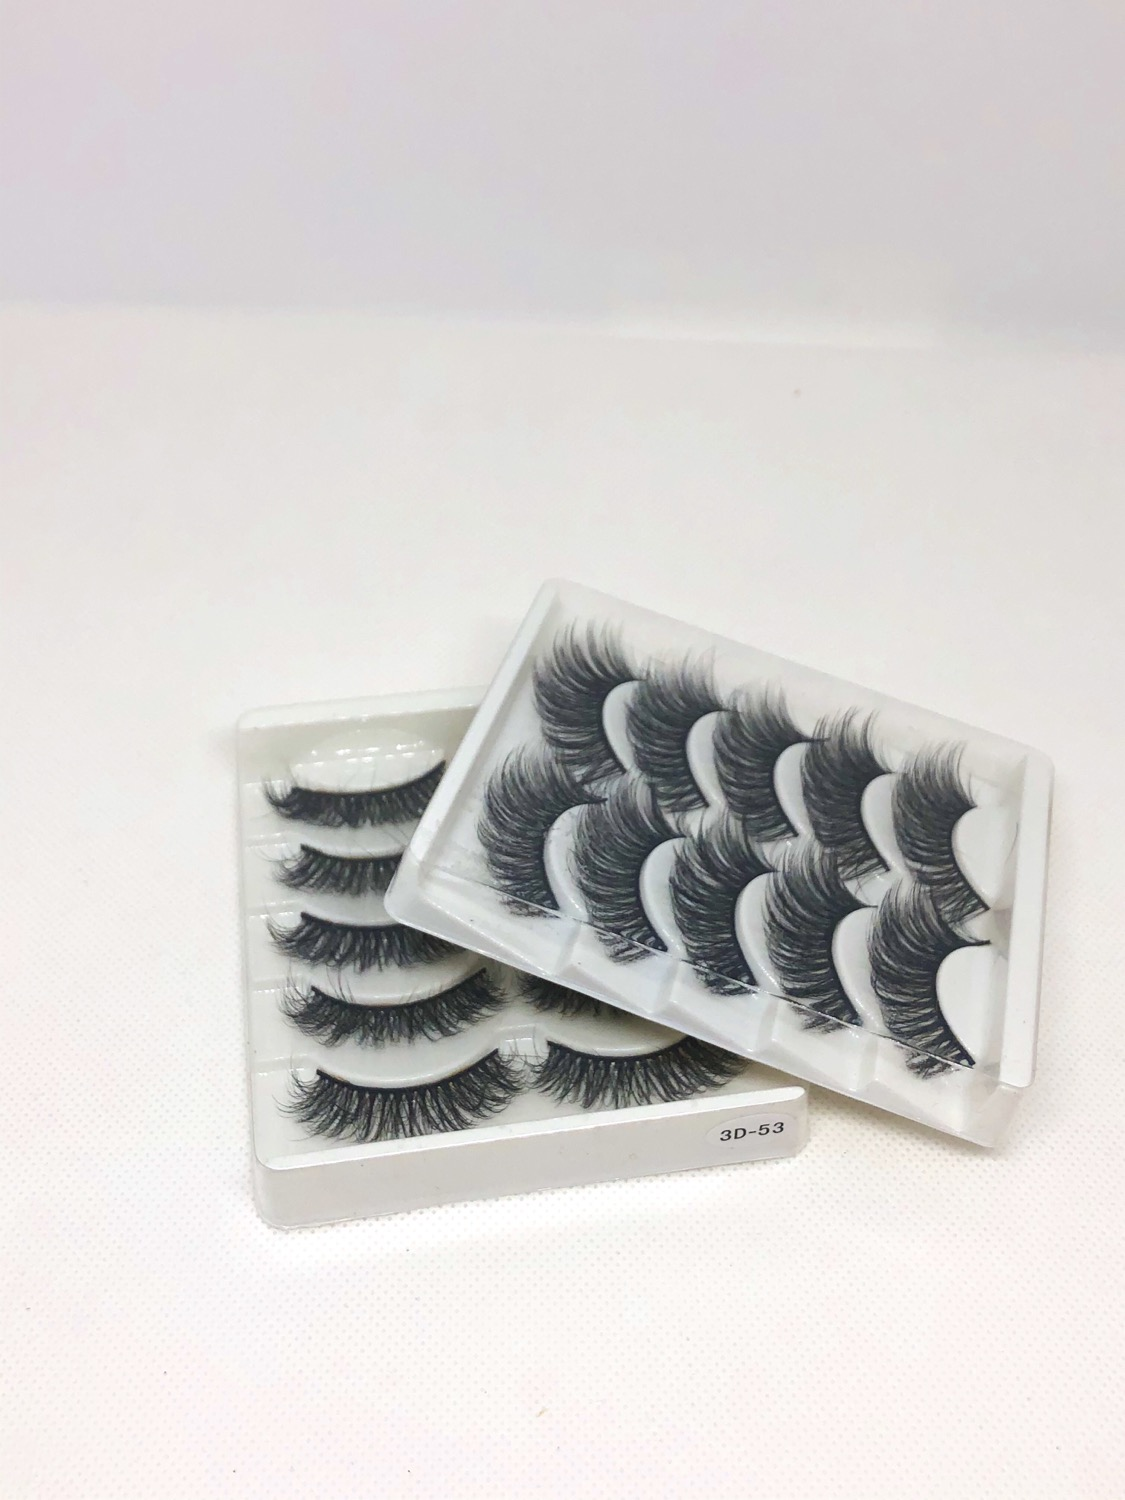 Thumbnail: 5Pairs Dramatic 3D Mink Hair False Eyelashes Natural/Thick Long Eye Lashes